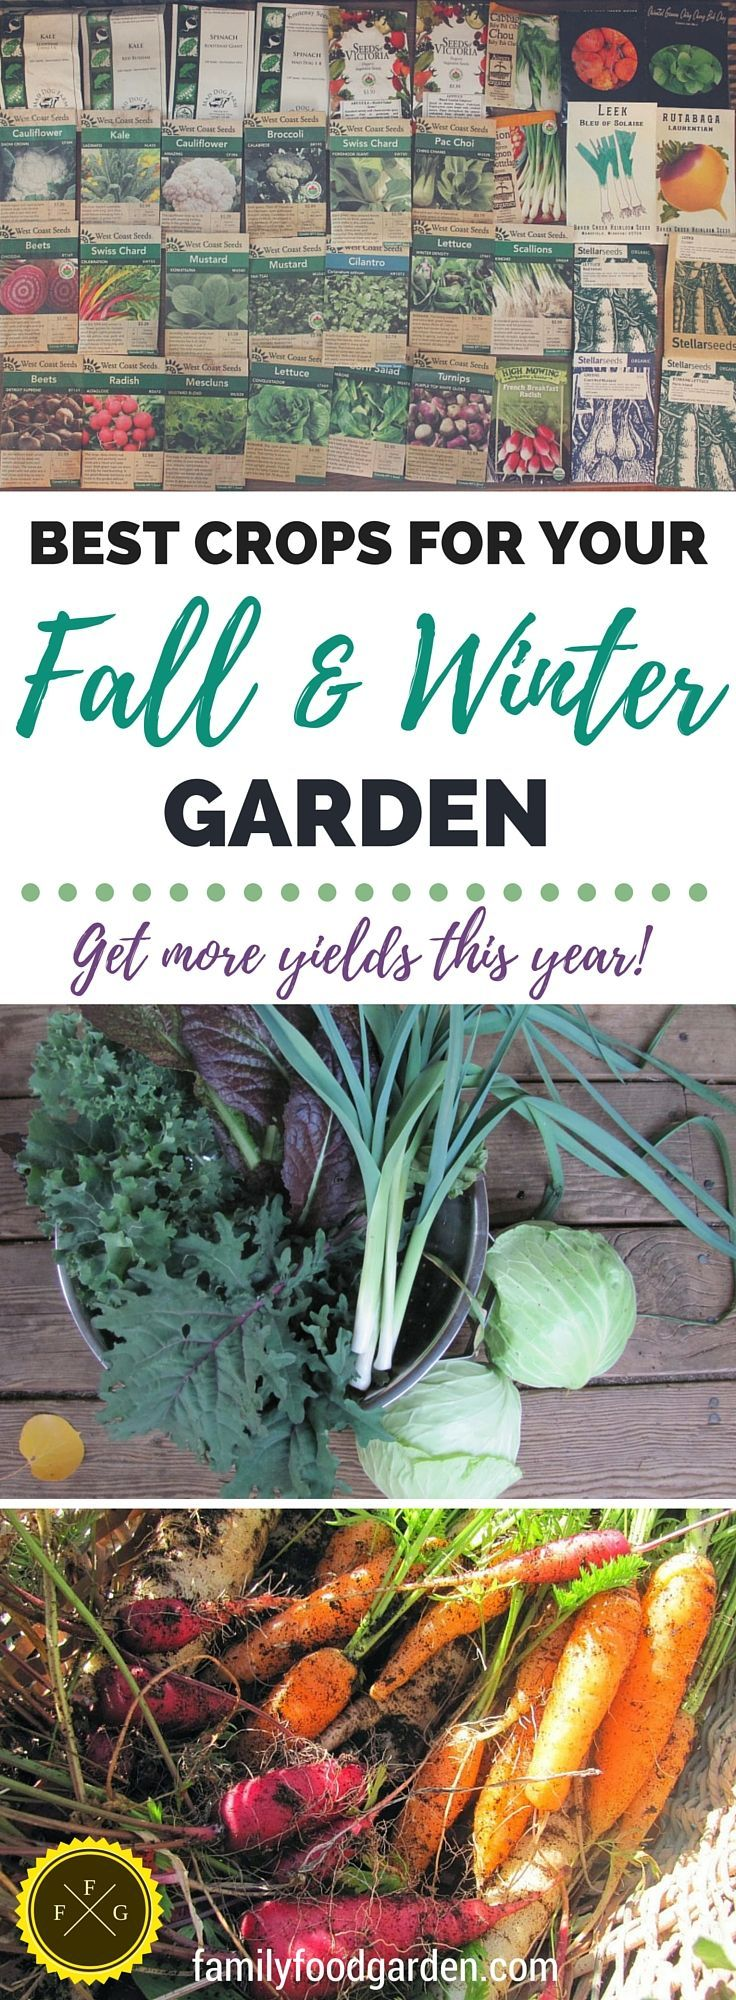 How to Plant your Fall & Winter Garden